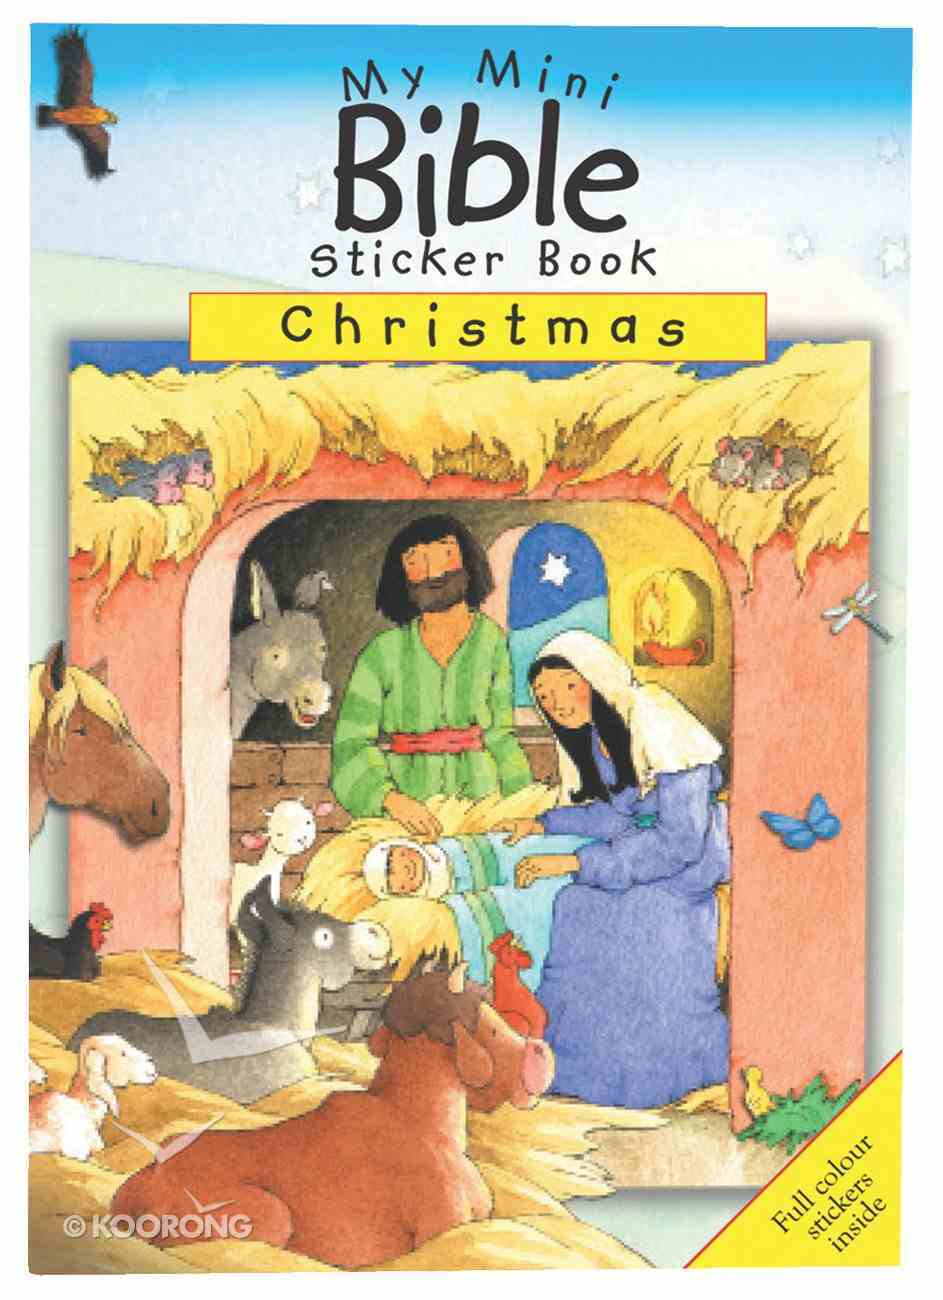 My Mini Bible Sticker Book: Christmas Paperback